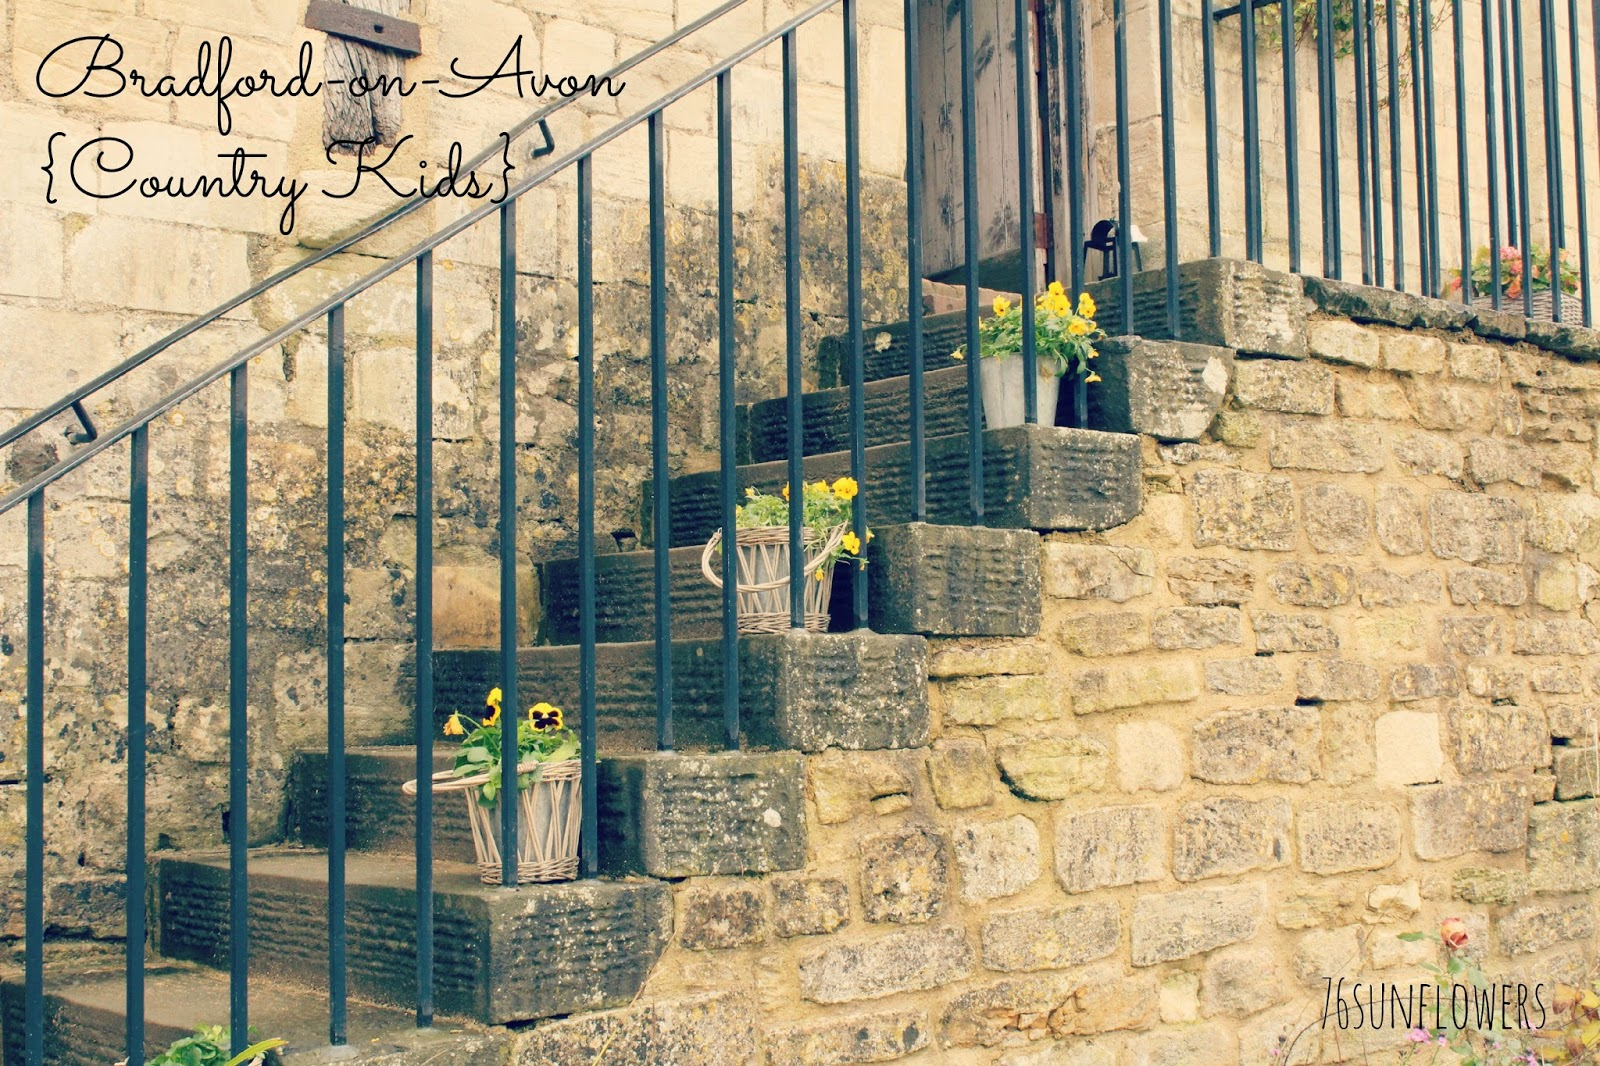 Bradford-on-Avon walk {Country Kids} // 76sunflowers